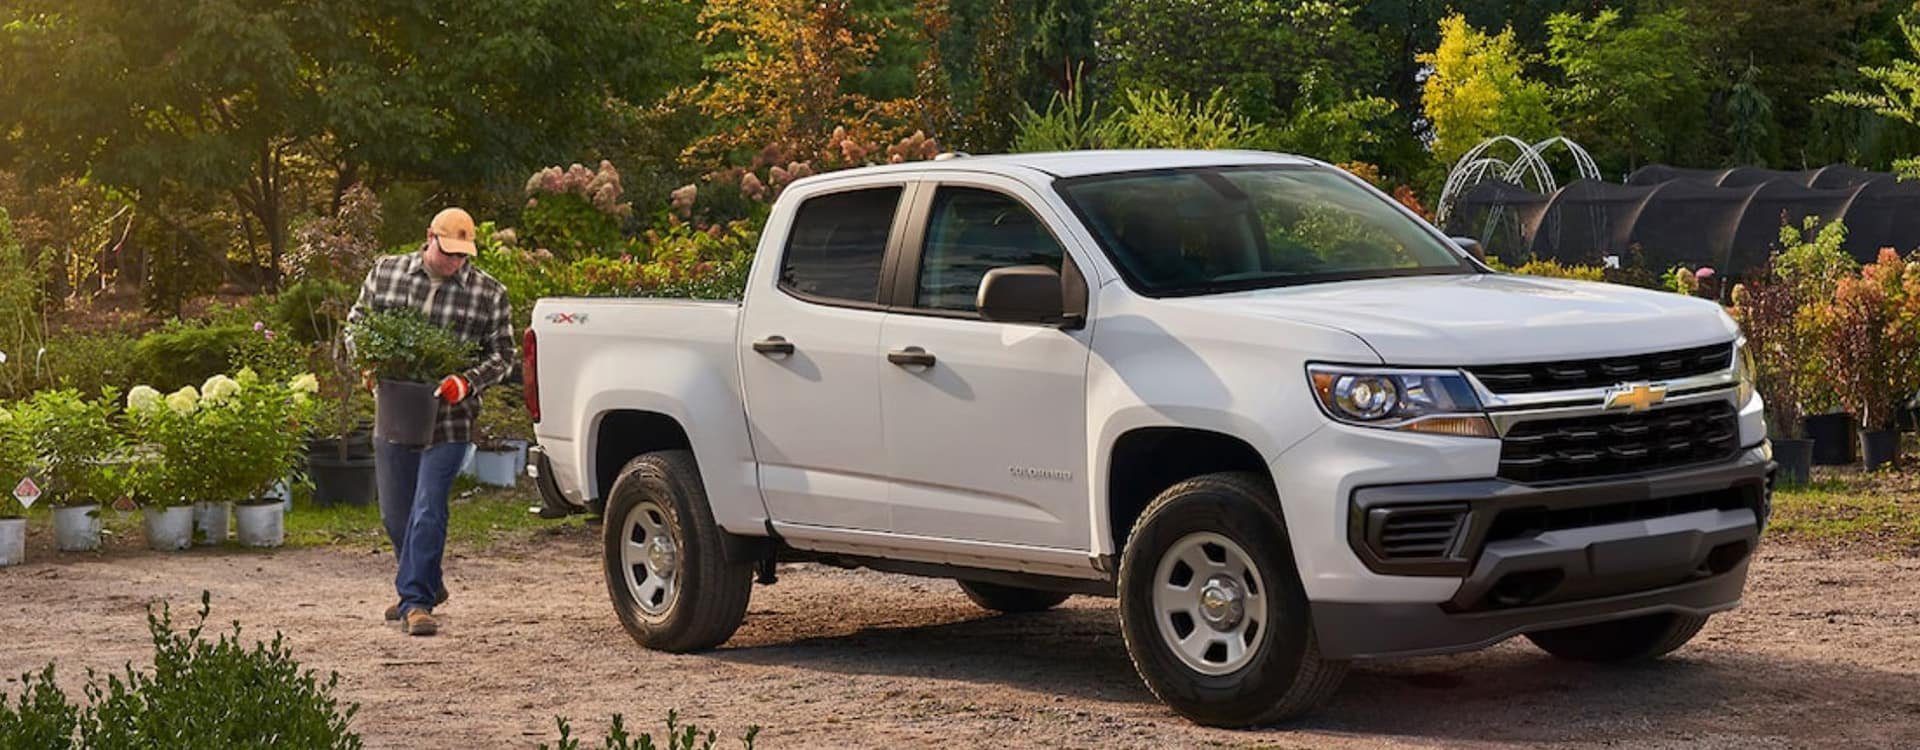 2021 Chevrolet Colorado in St. Louis